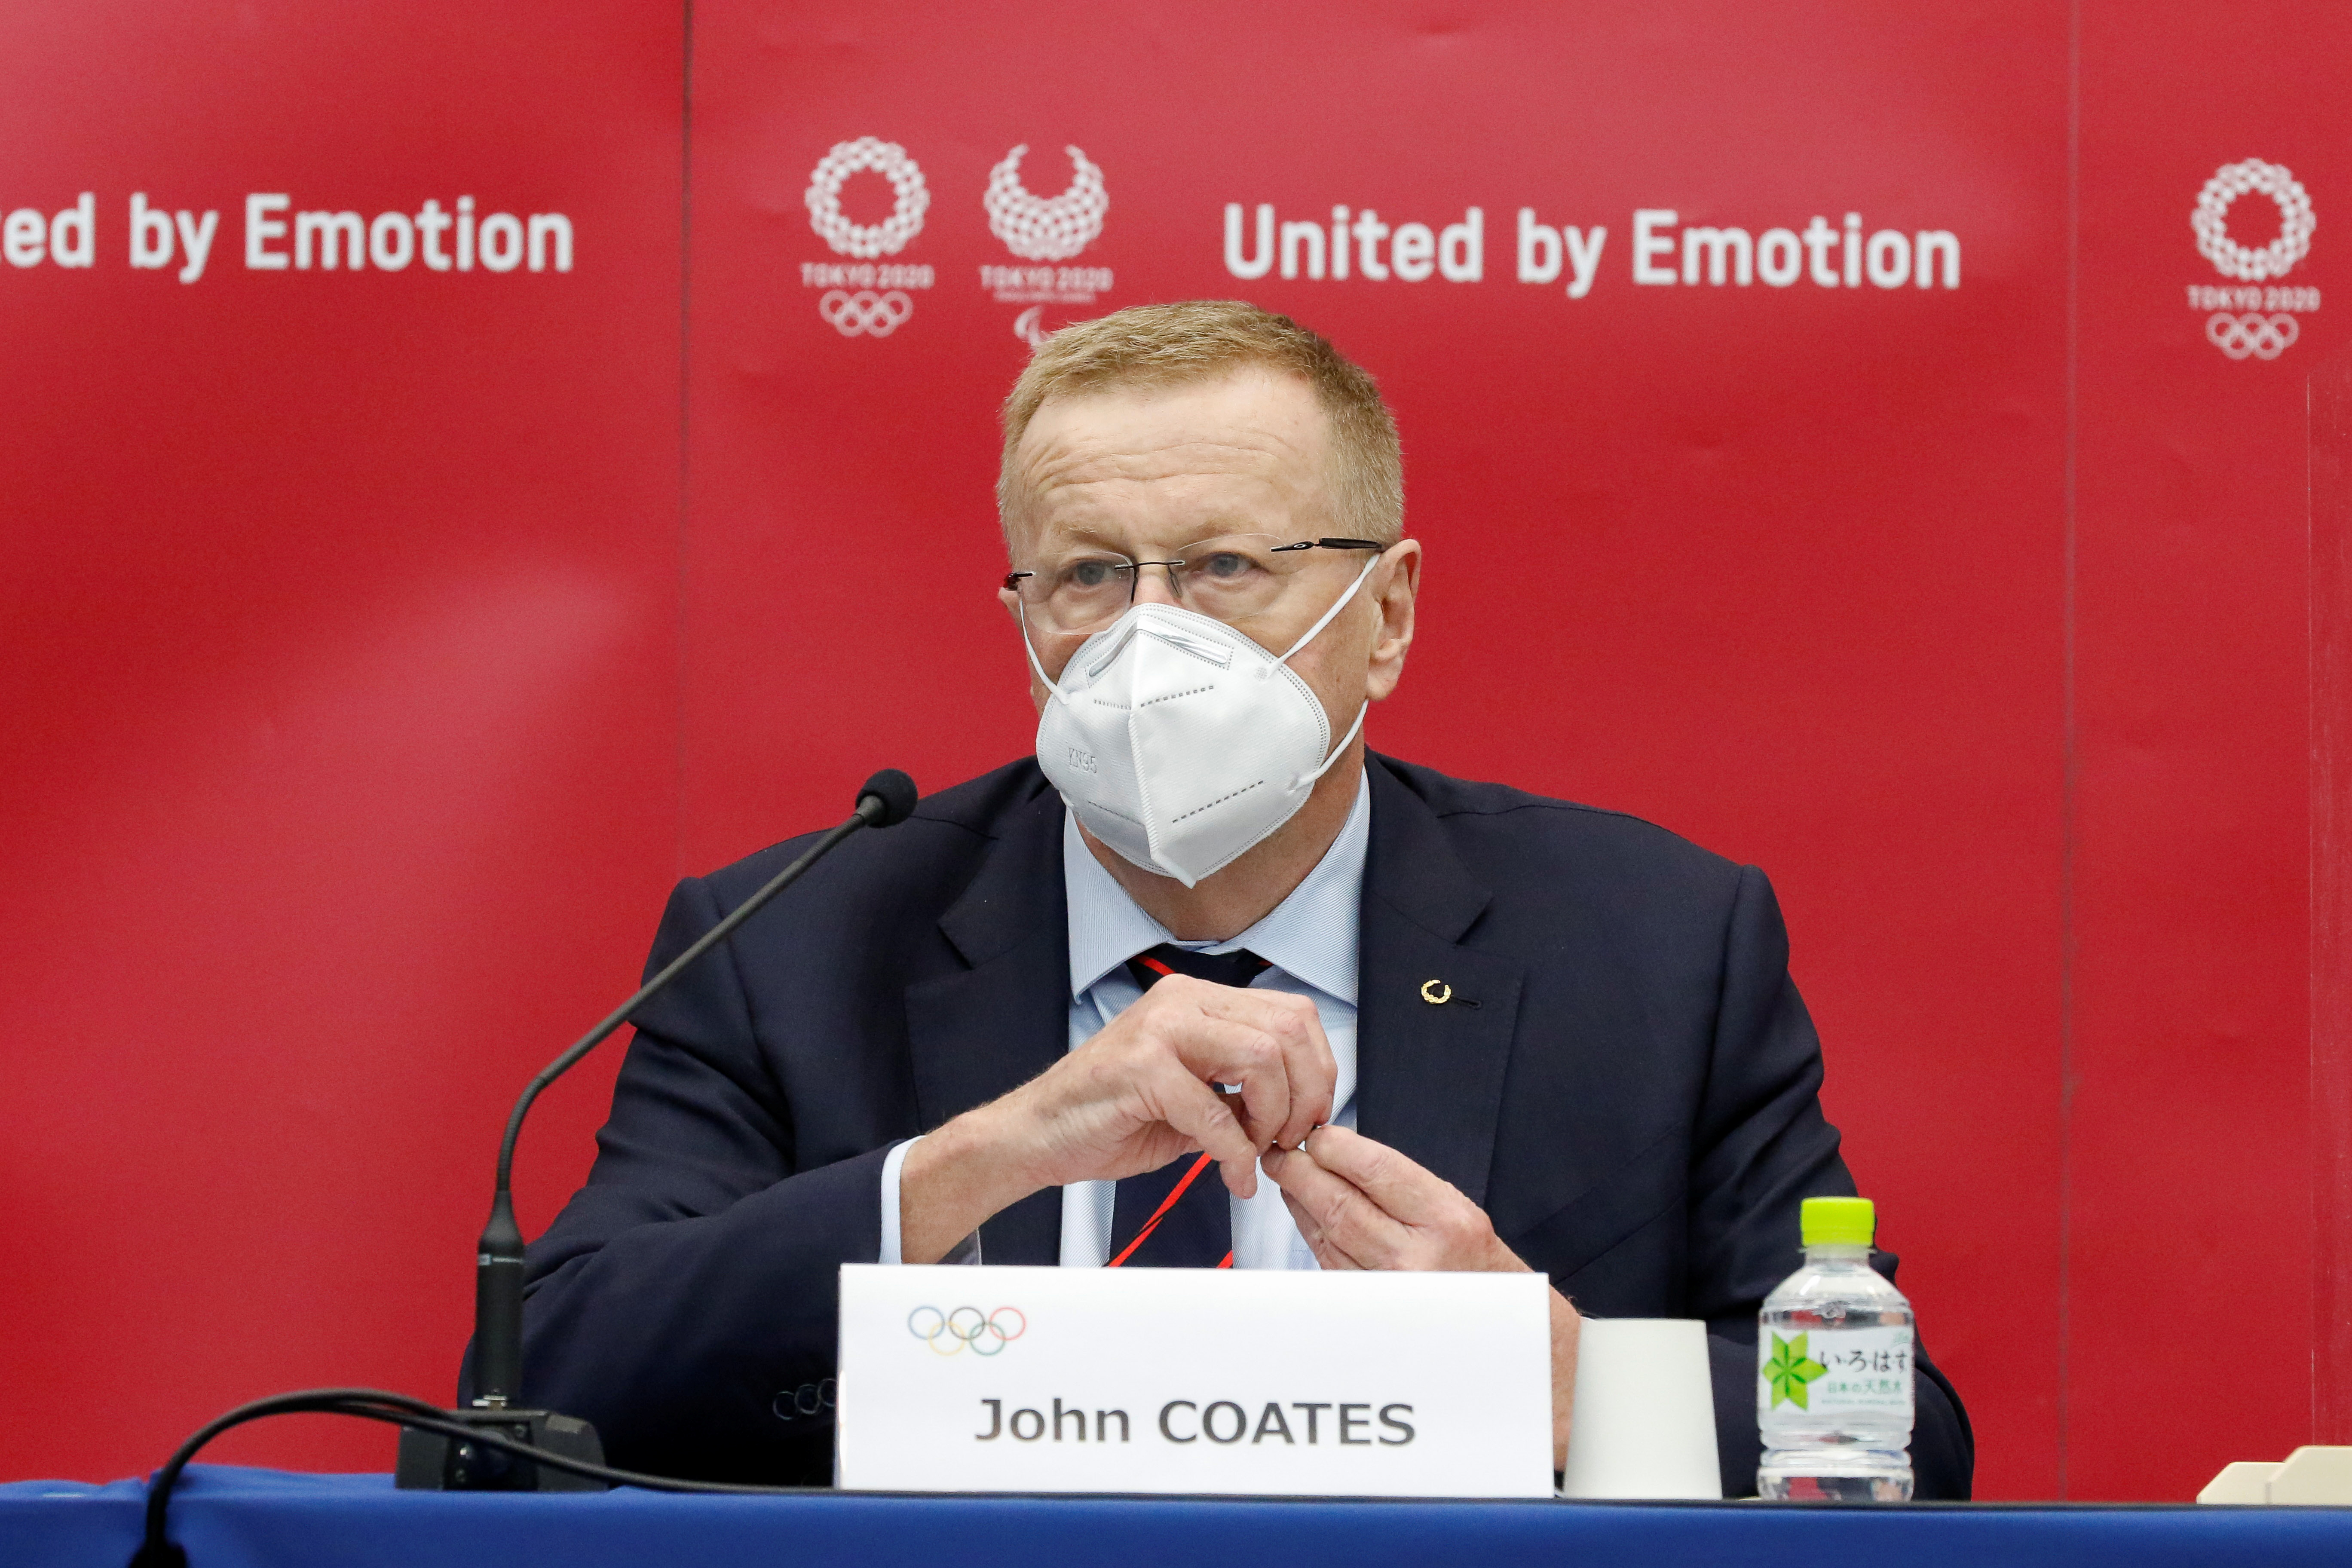 John Coates, Chairman of the Coordination Commission for the Games of the XXXII Olympiad Tokyo 2020, wears a face mask as he speaks during a joint press conference with the organizers of Tokyo 2020 at Harumi Island Triton Square Tower Y in Tokyo, Japan November 18, 2020. Rodrigo Reyes Marin/Pool via REUTERS